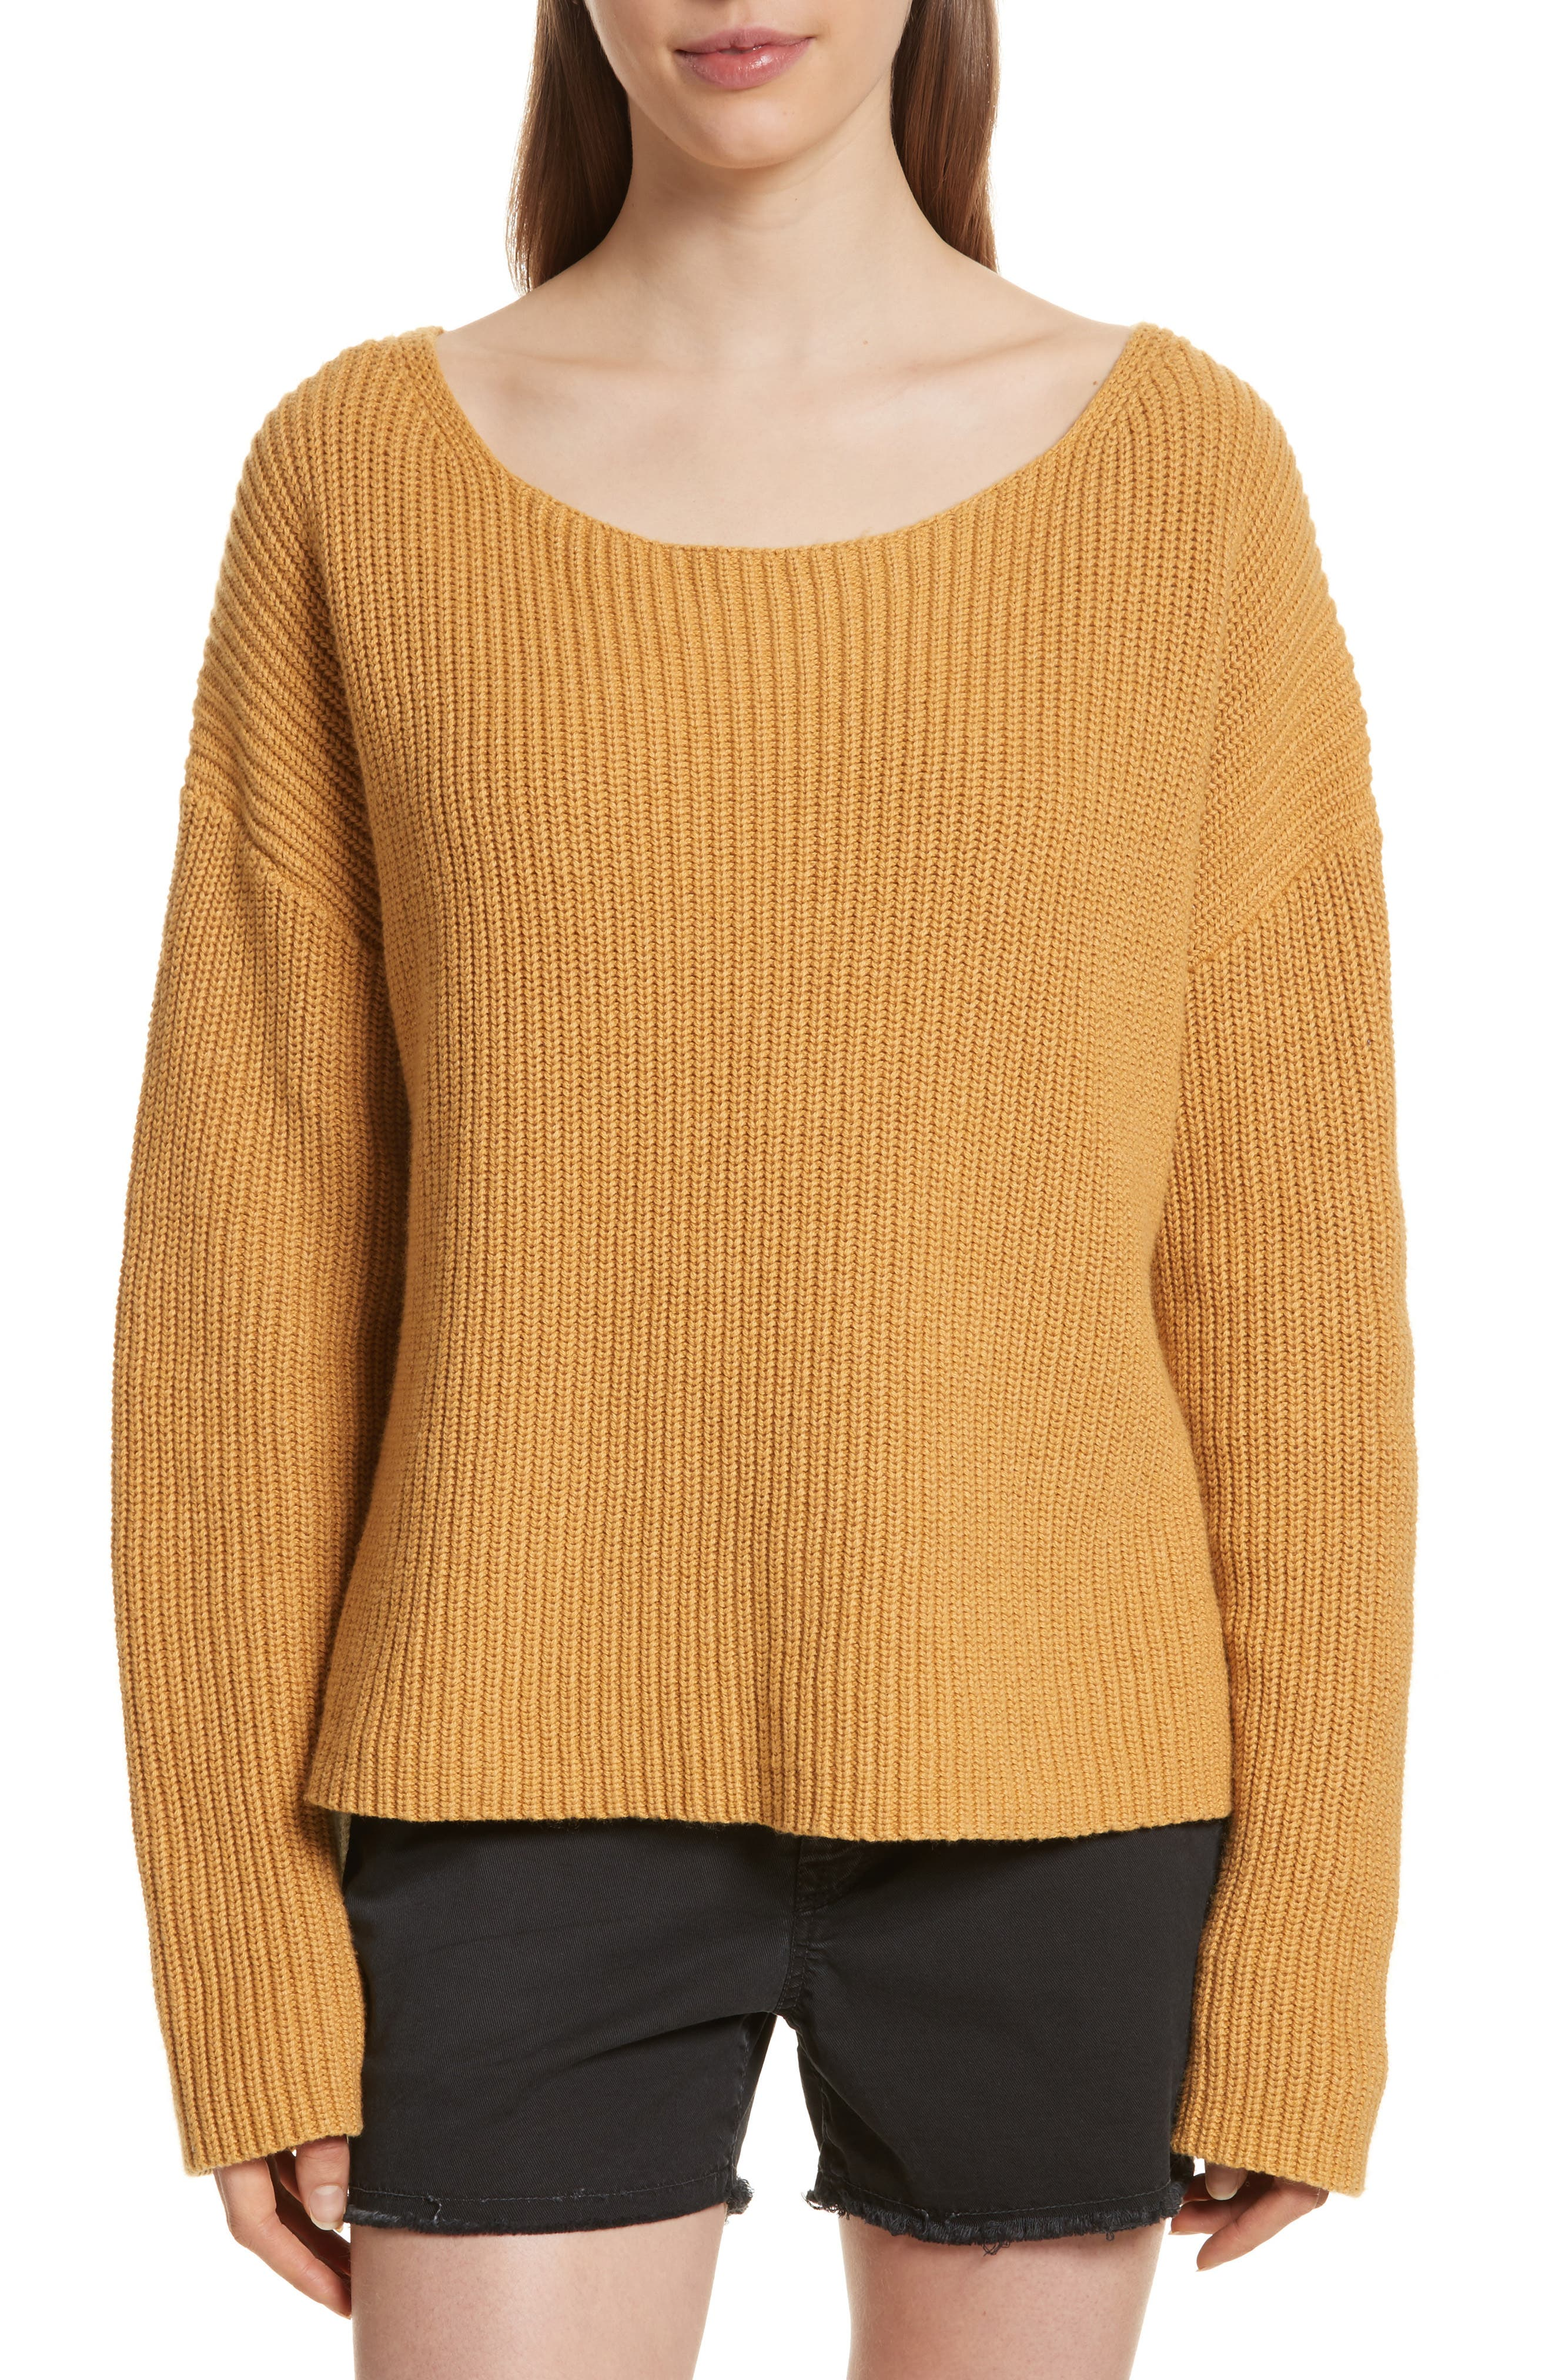 Martindale Ribbed Cotton, Cashmere & Silk Sweater,                             Main thumbnail 1, color,                             701